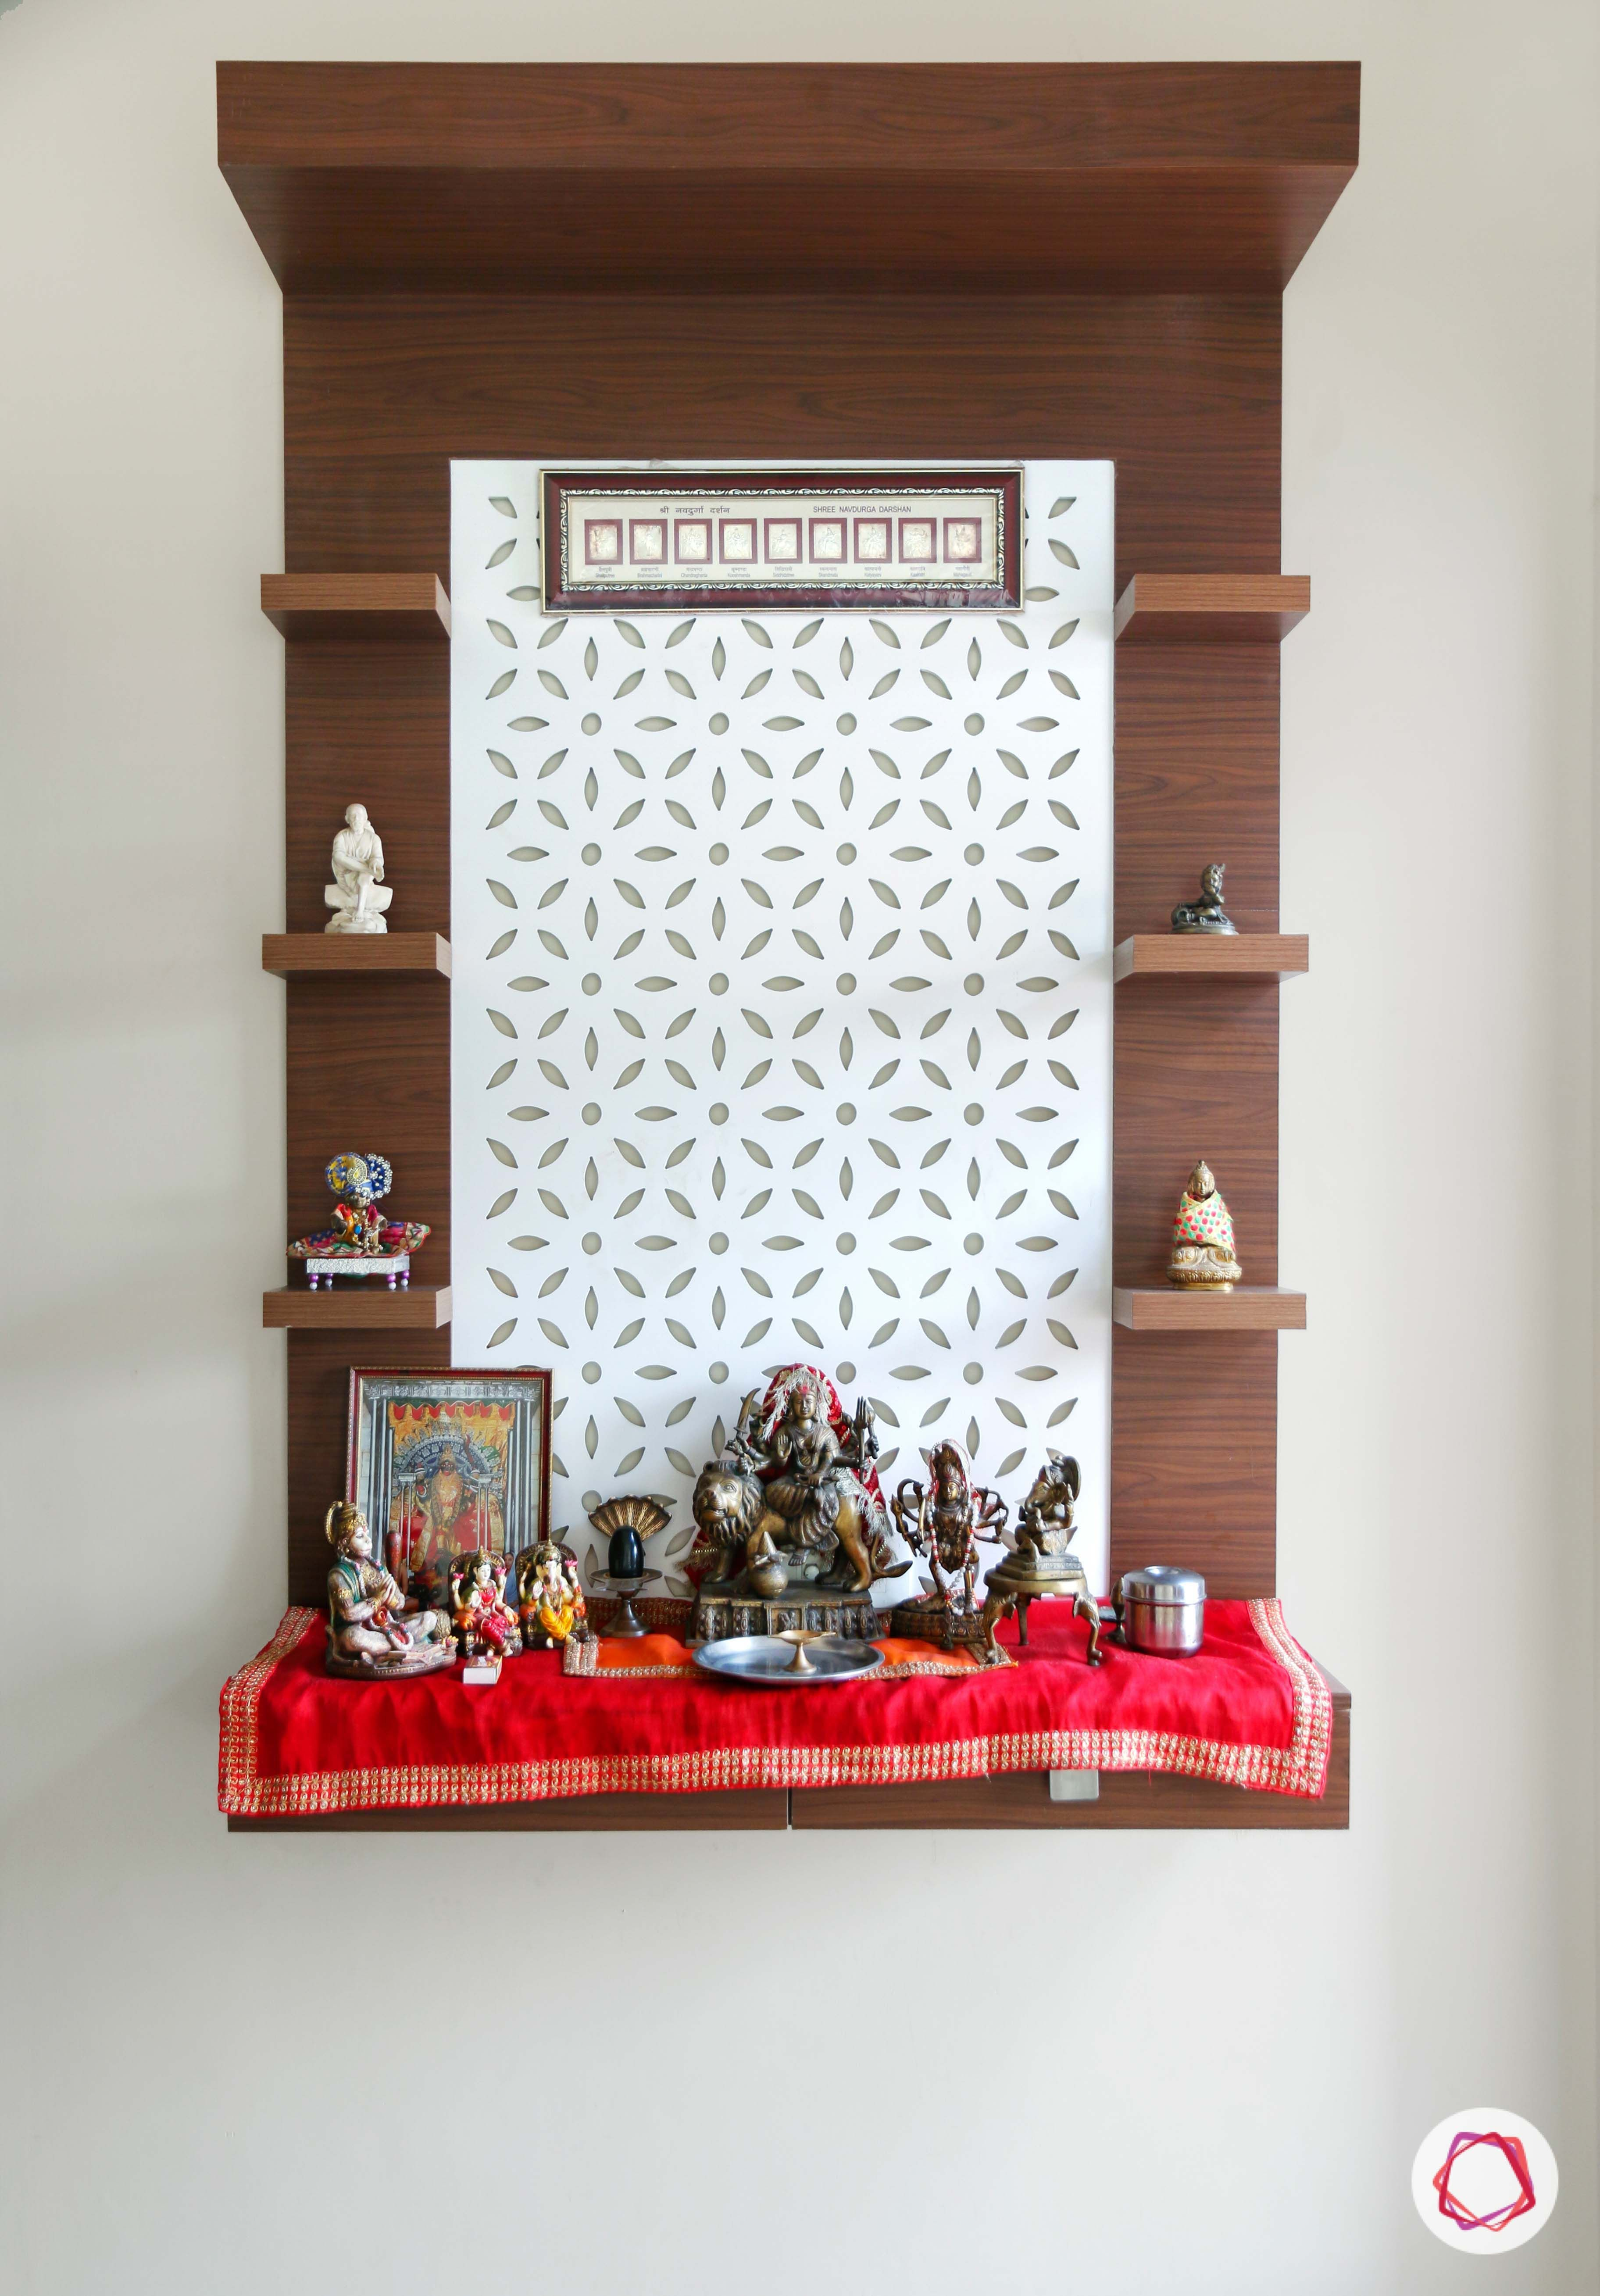 Latest Pooja Room Door Designs 2013: 11 Small Pooja Room Designs (With Dimensions) For Your